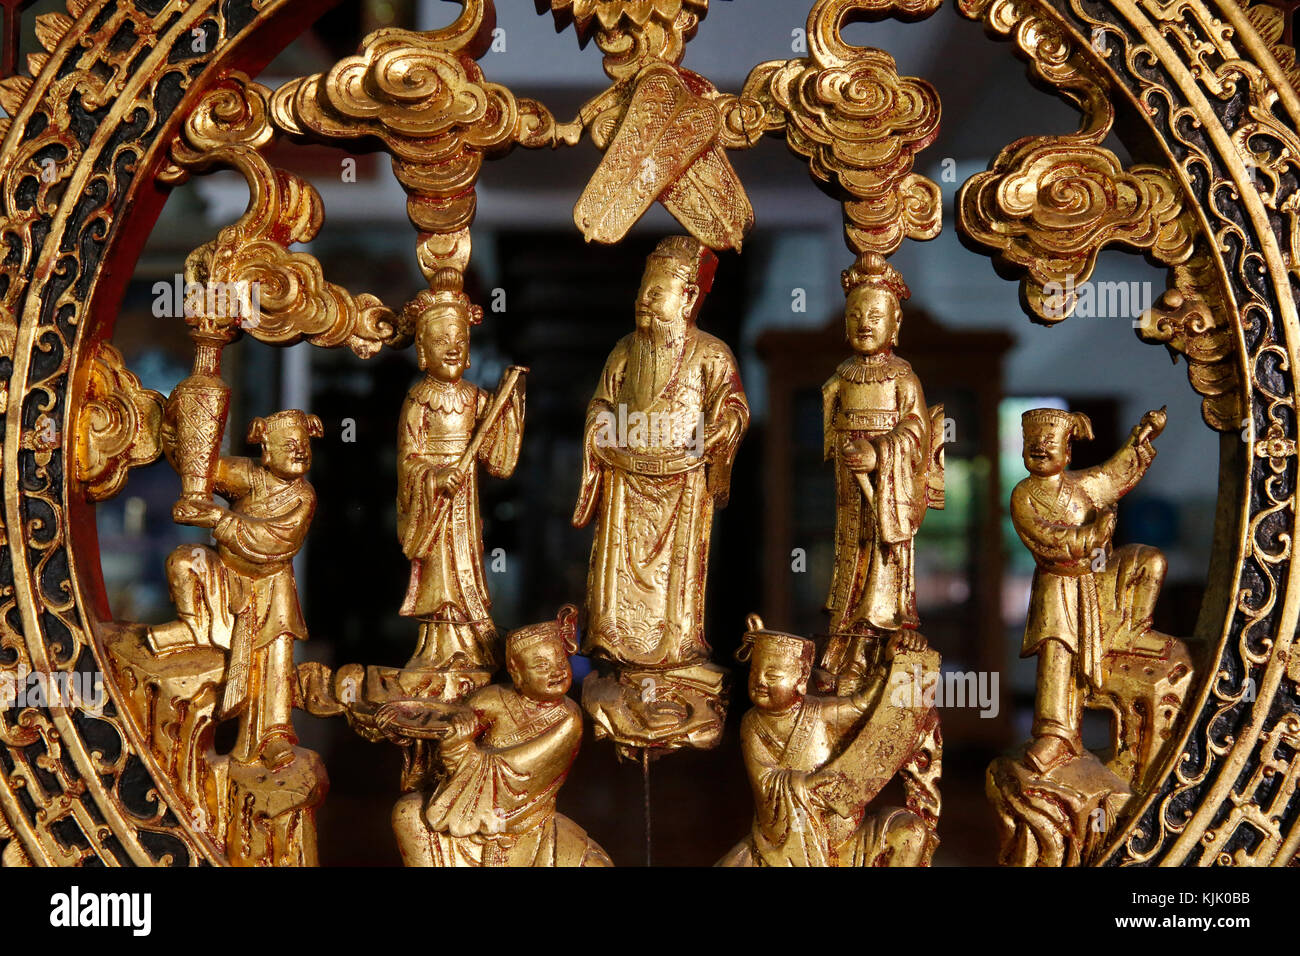 Wat Chedi Luang, Chiang Mai. Art work in the Buddhist museum. Thailand. - Stock Image